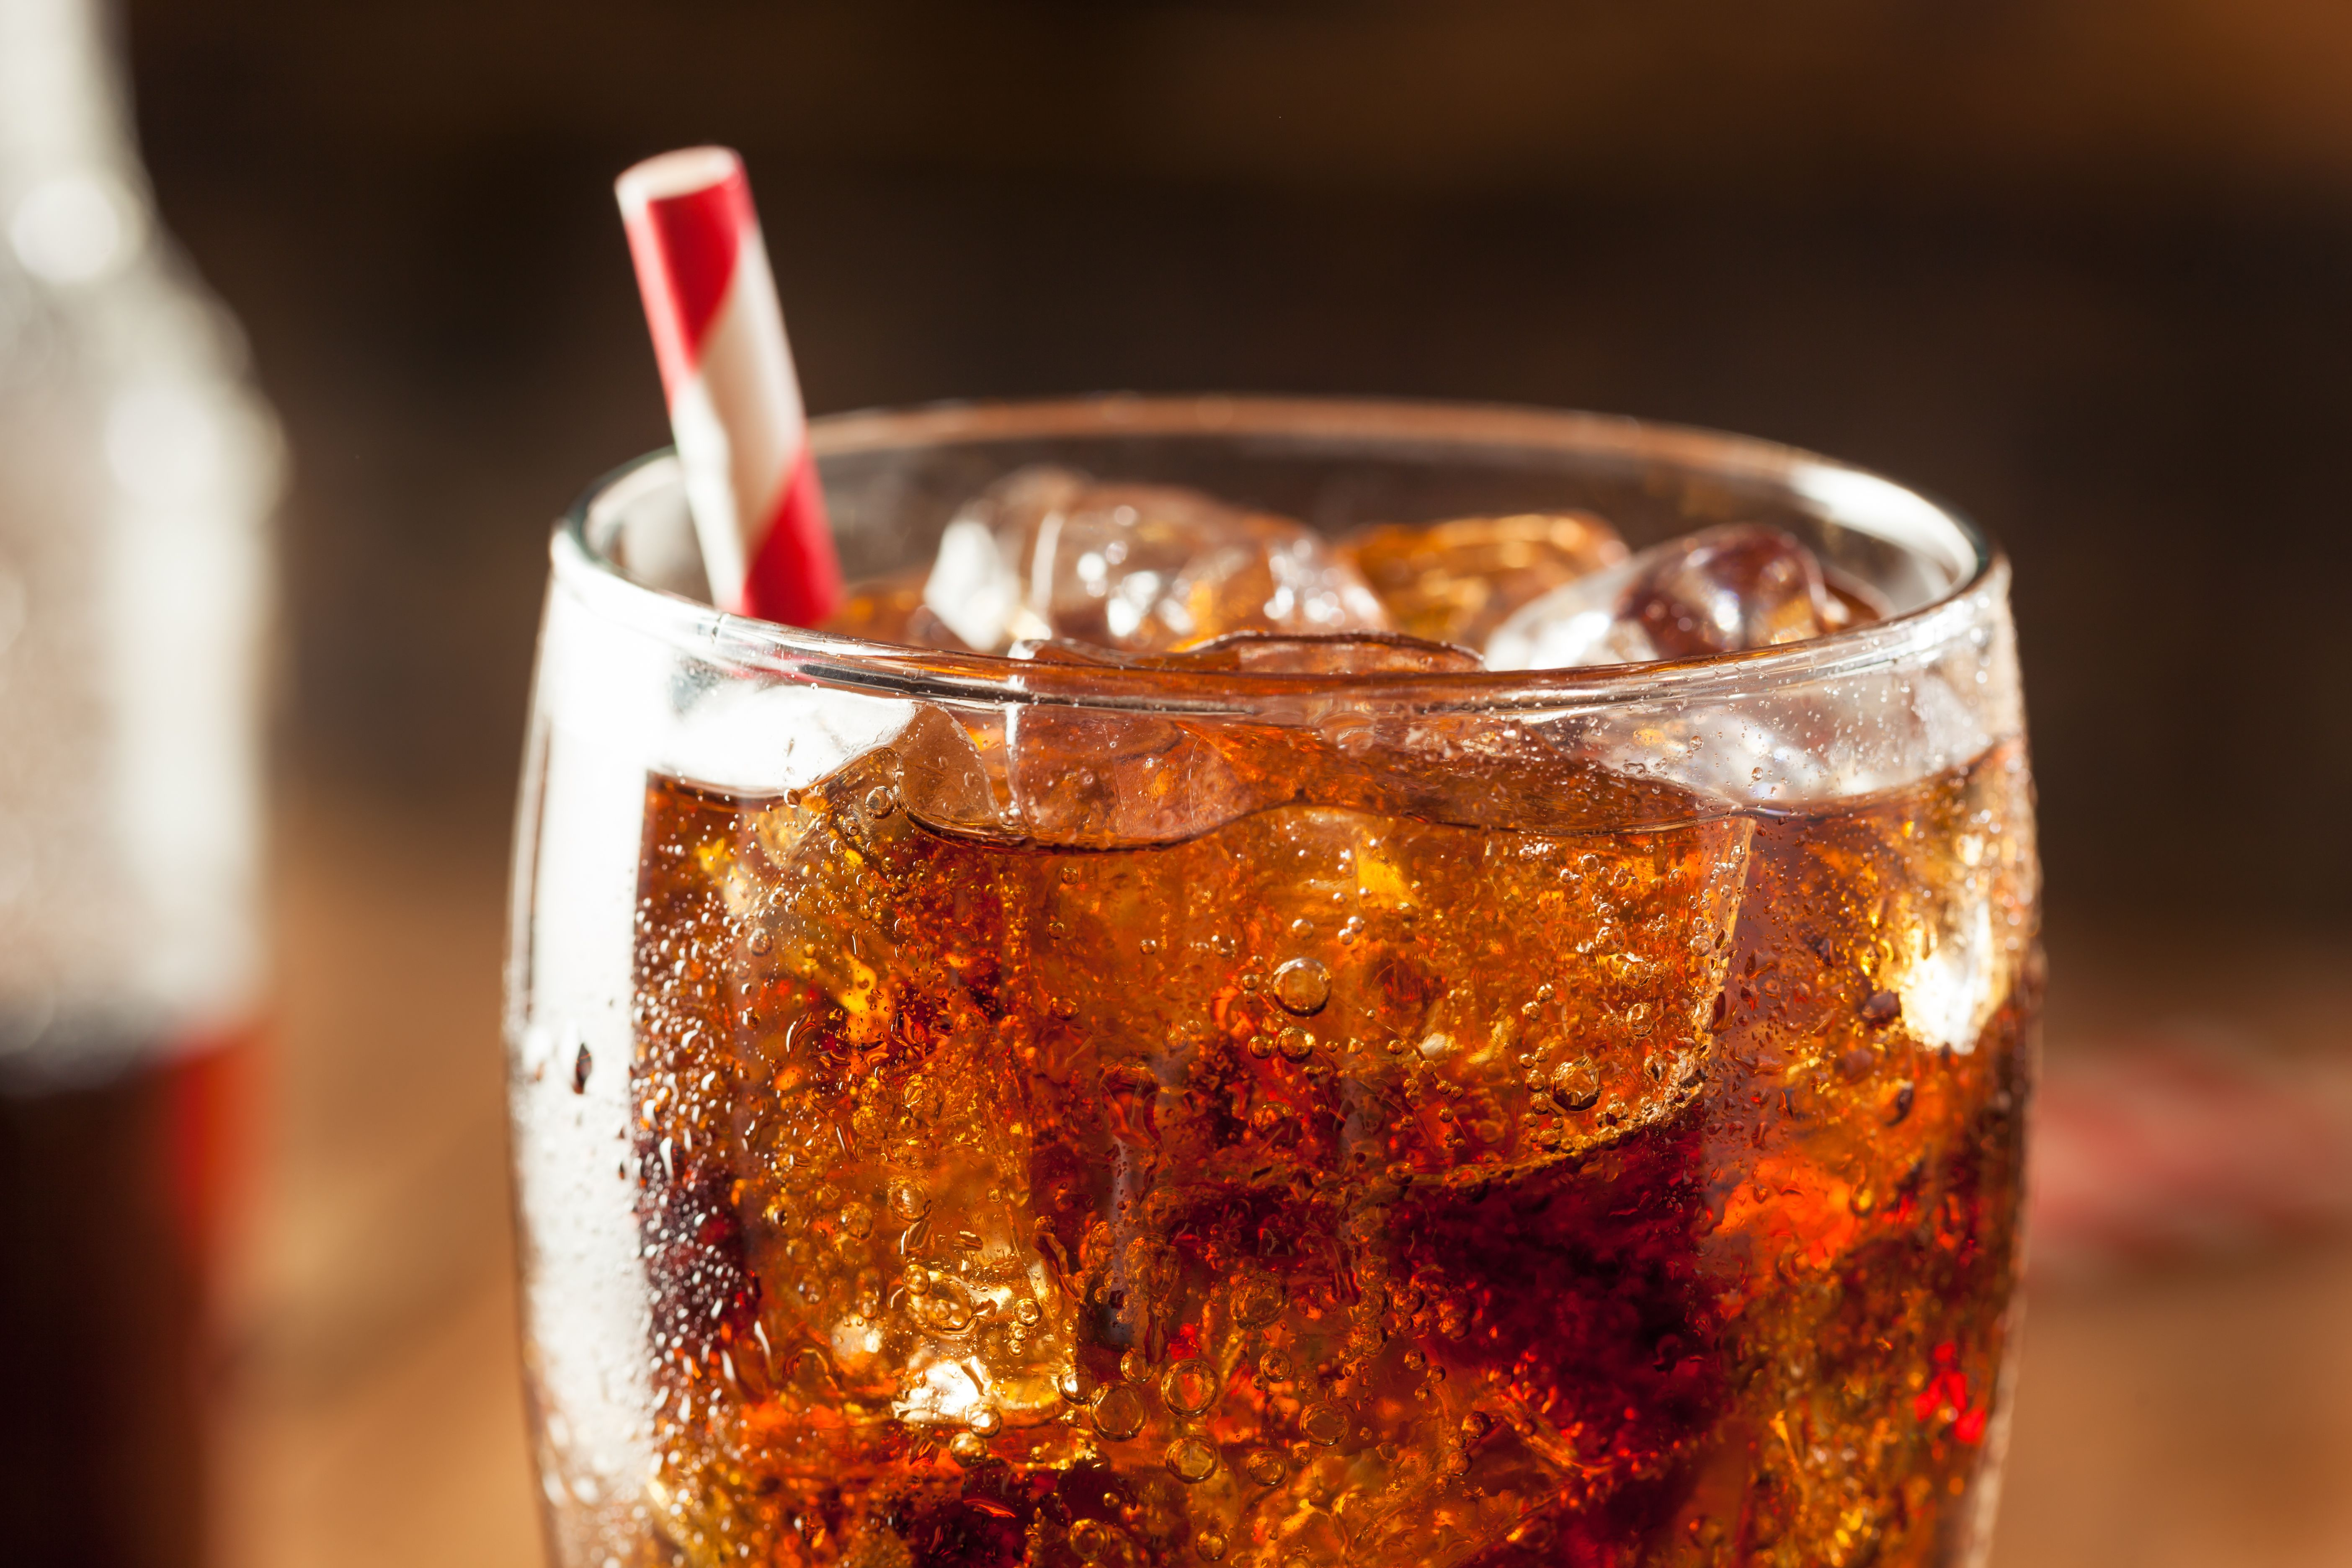 A photograph of a dark soda with a straw in it